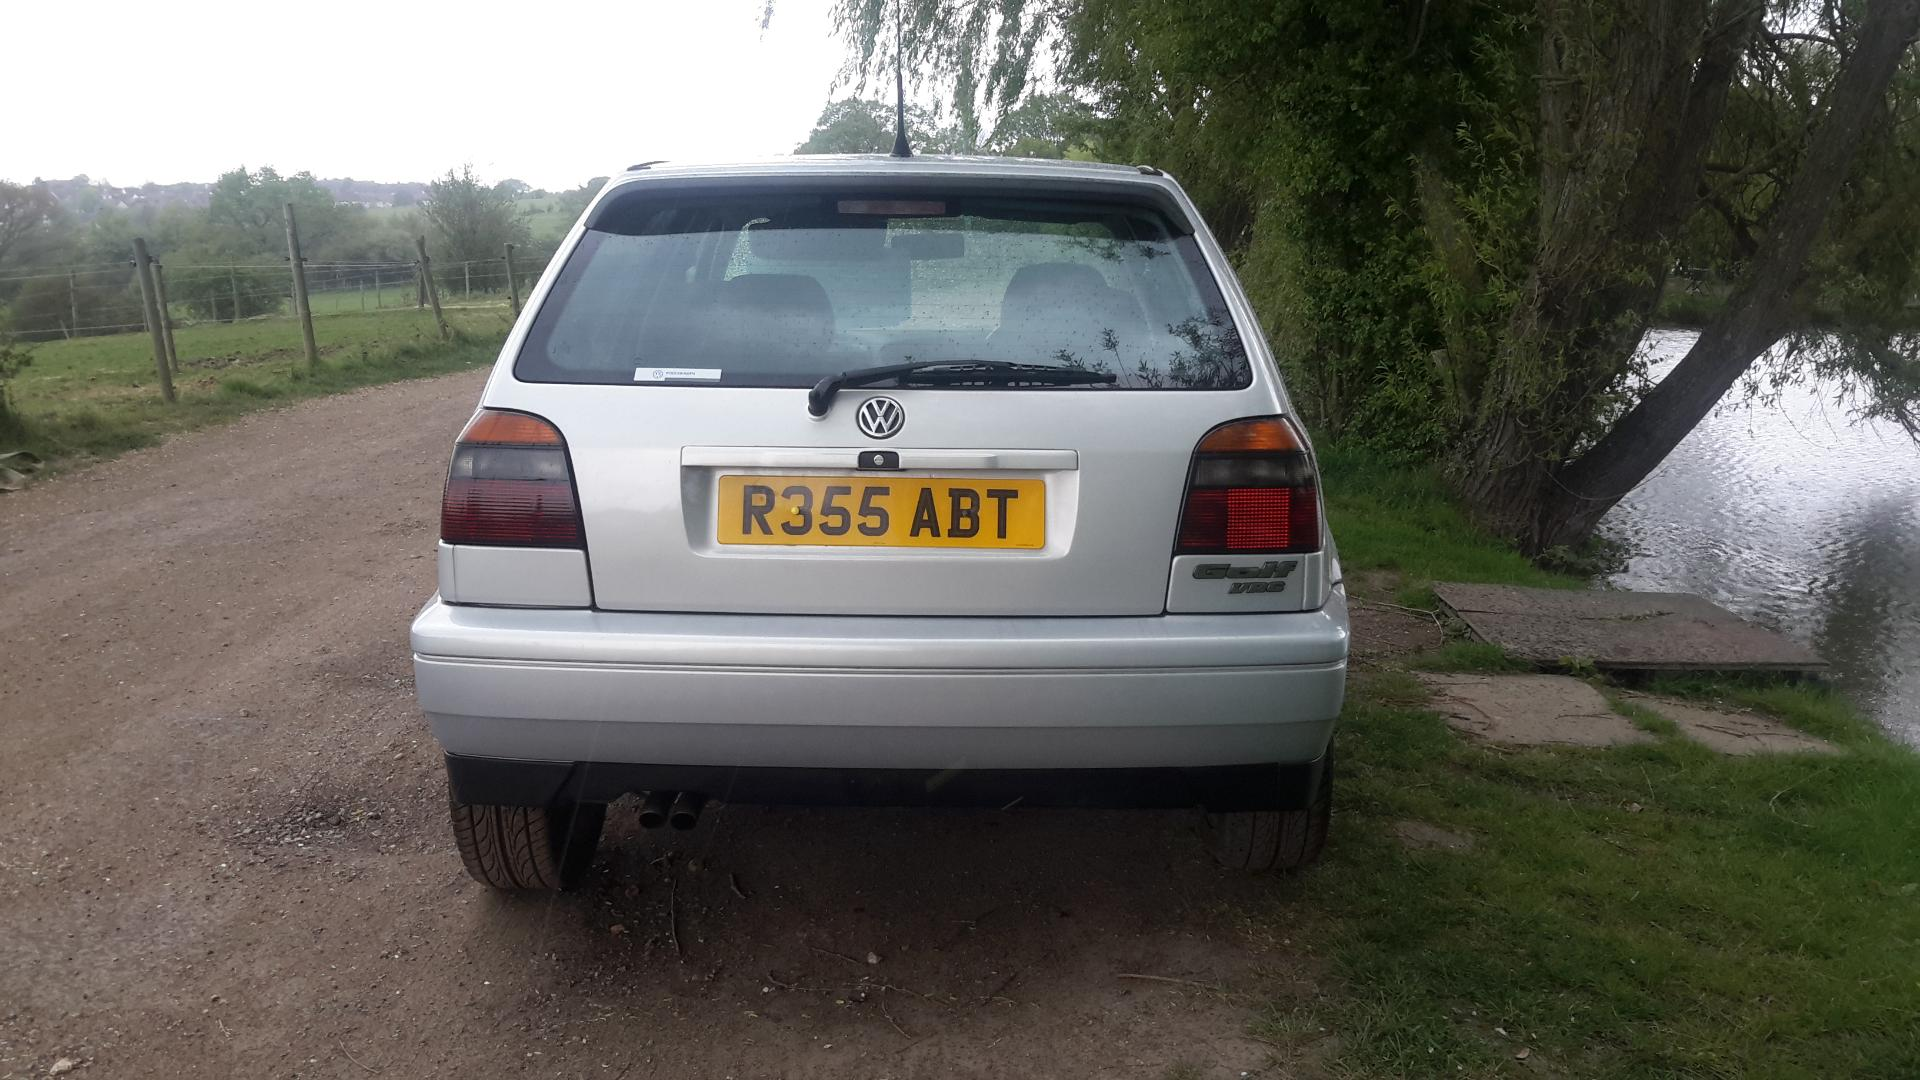 hight resolution of  1998 r volkswagen golf 2 8 vr6 5 door vr6 for sale in waltham abbey